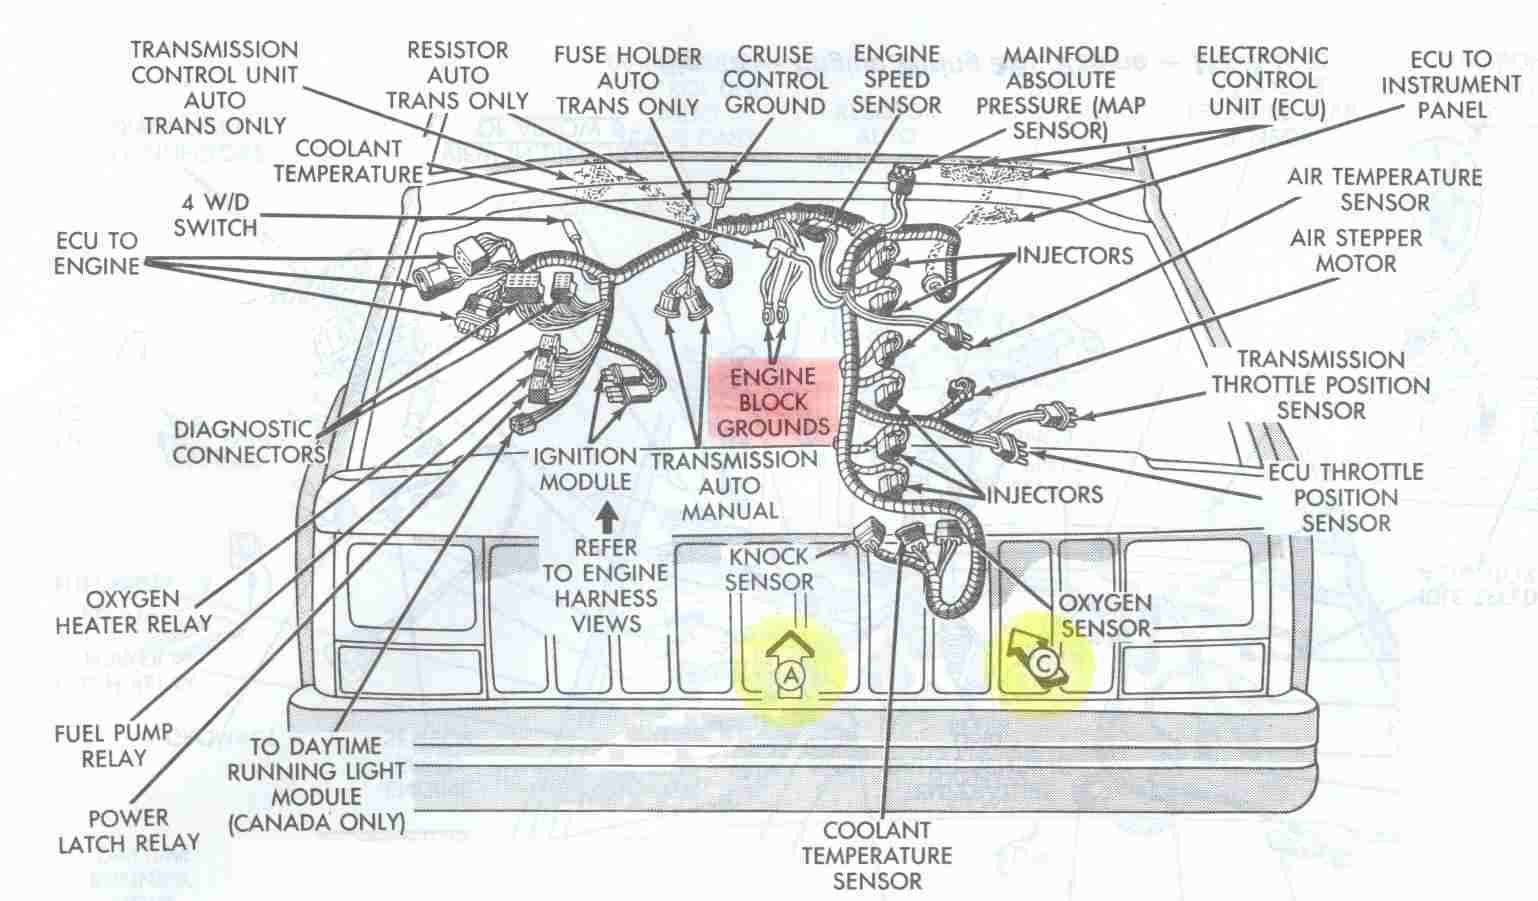 ab0134a7d9e021431187af597eb4aeca engine bay schematic showing major electrical ground points for 2004 jeep wrangler engine diagram at panicattacktreatment.co